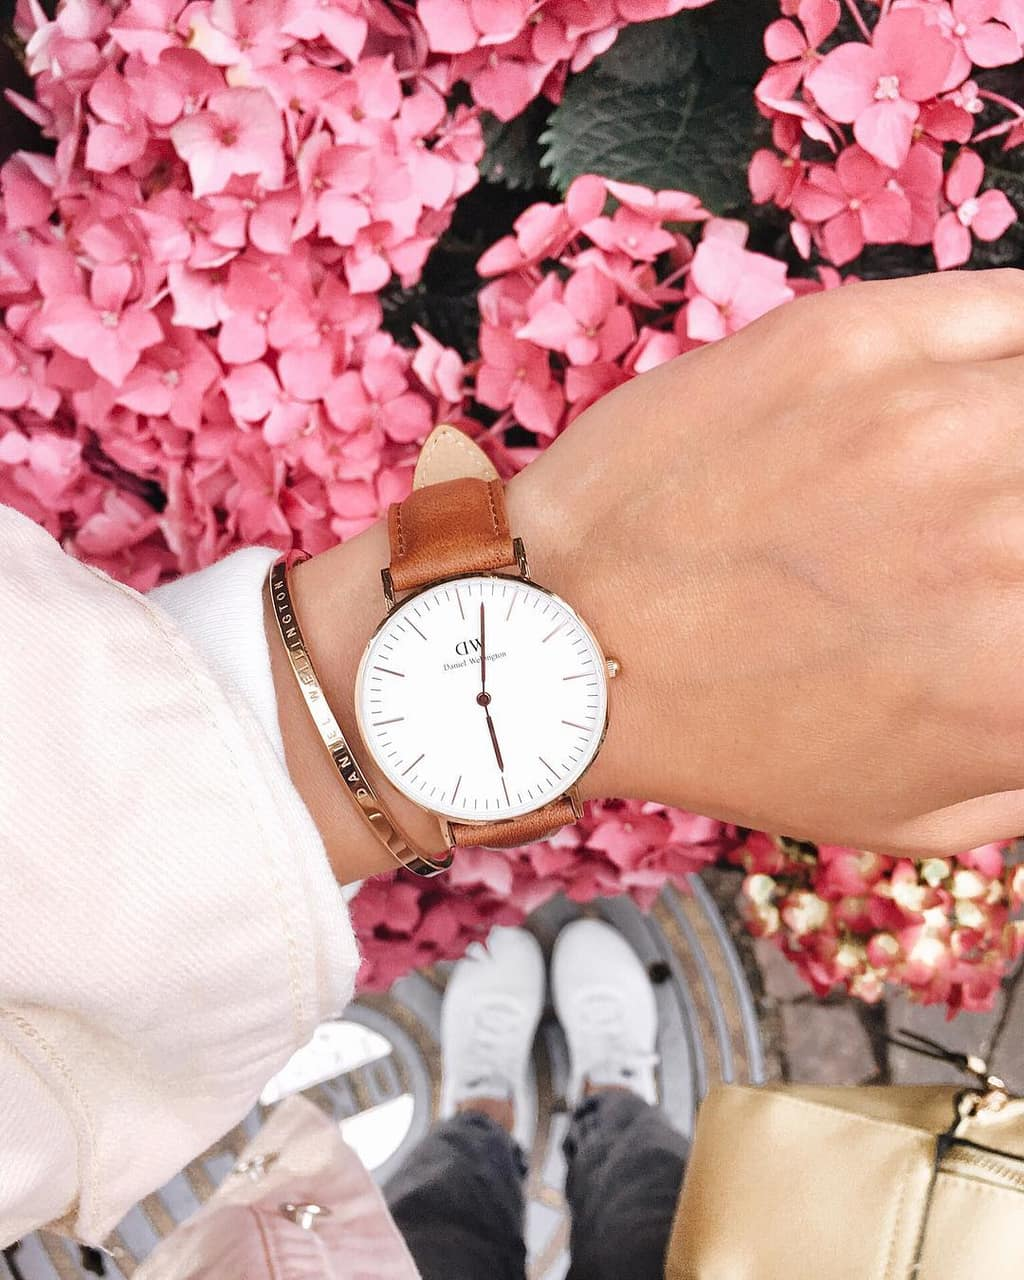 91b0949252508b 123 images about DW Autumn on We Heart It | See more about daniel wellington,  watch and autumn